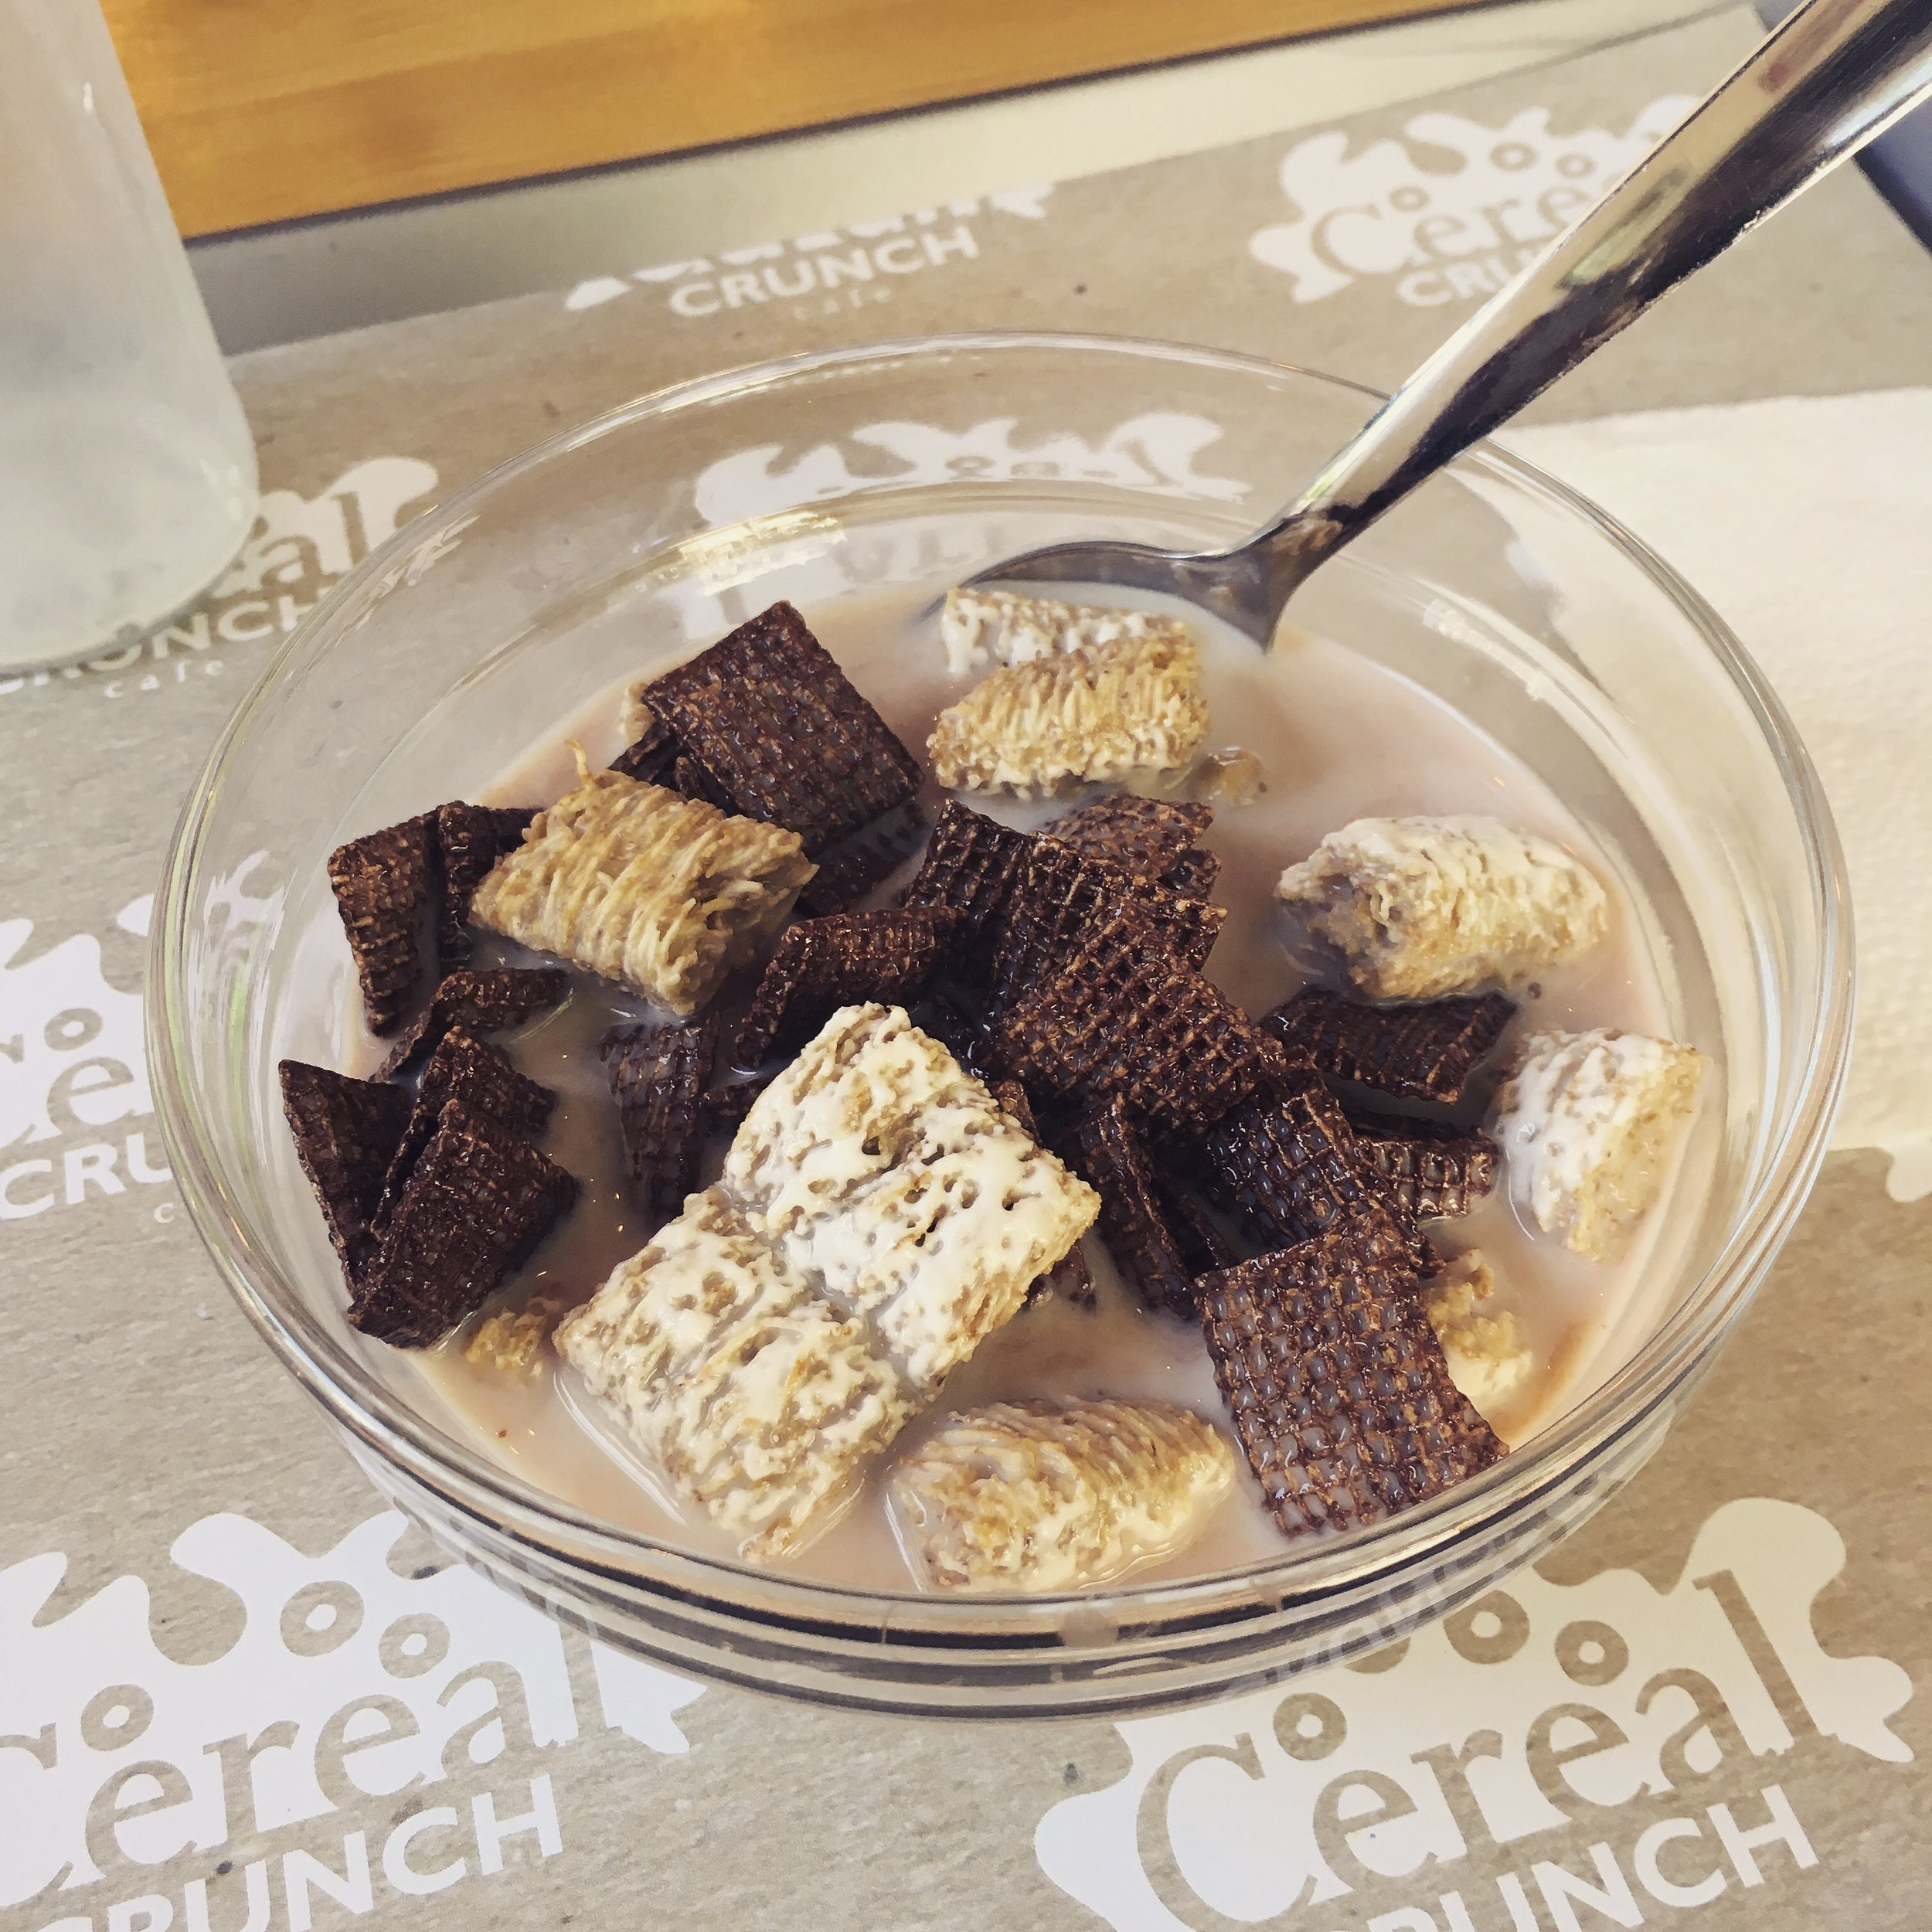 shreddies & frosted wheats after